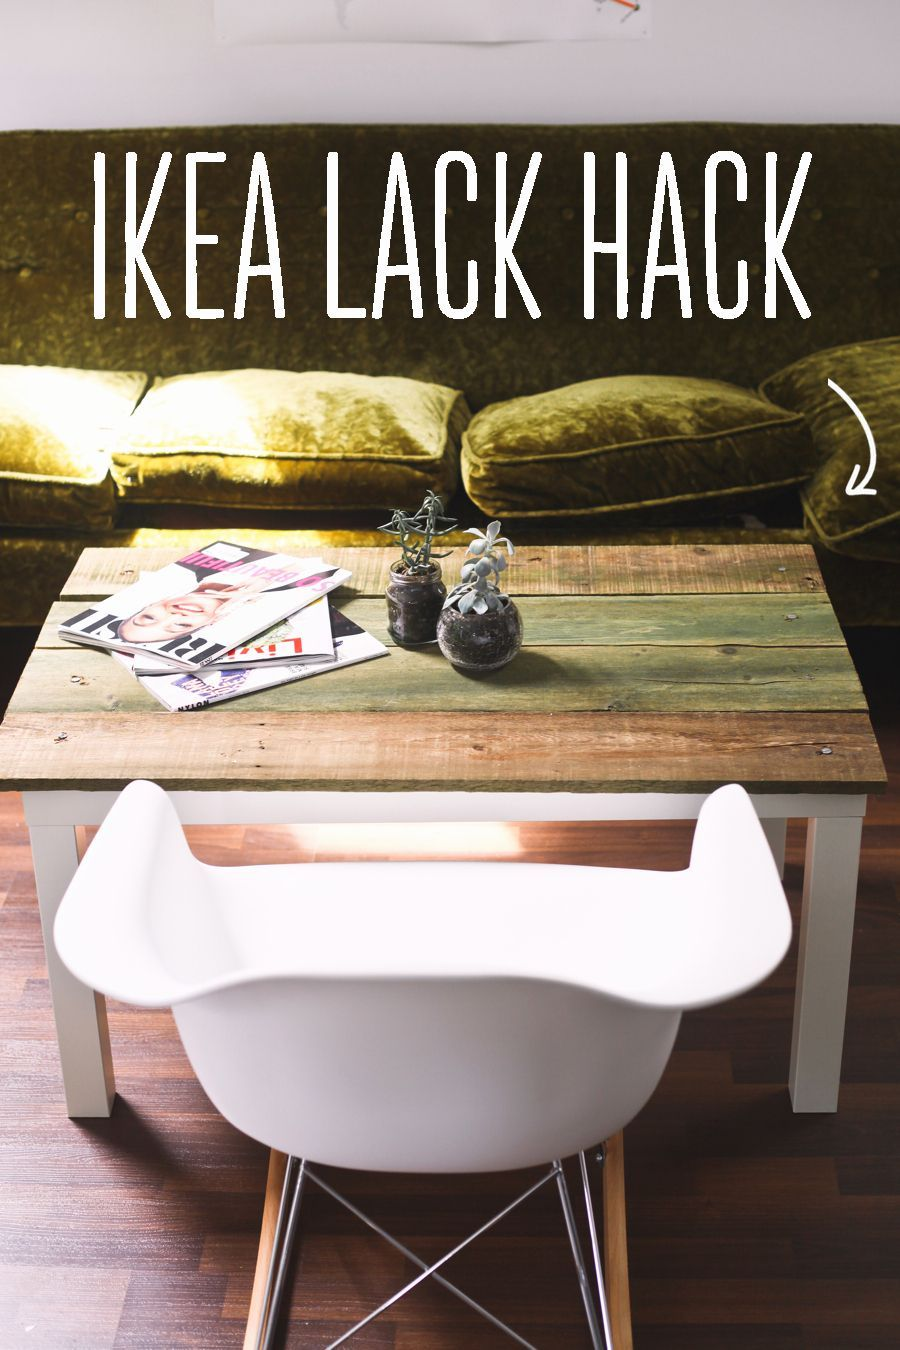 Ikea Lack Coffee Table Hack While The Coffee Table May Seem Like It S Been An Integral Part Of Int Ikea Coffee Table Lack Coffee Table Coffee Table Hacks [ 1350 x 900 Pixel ]